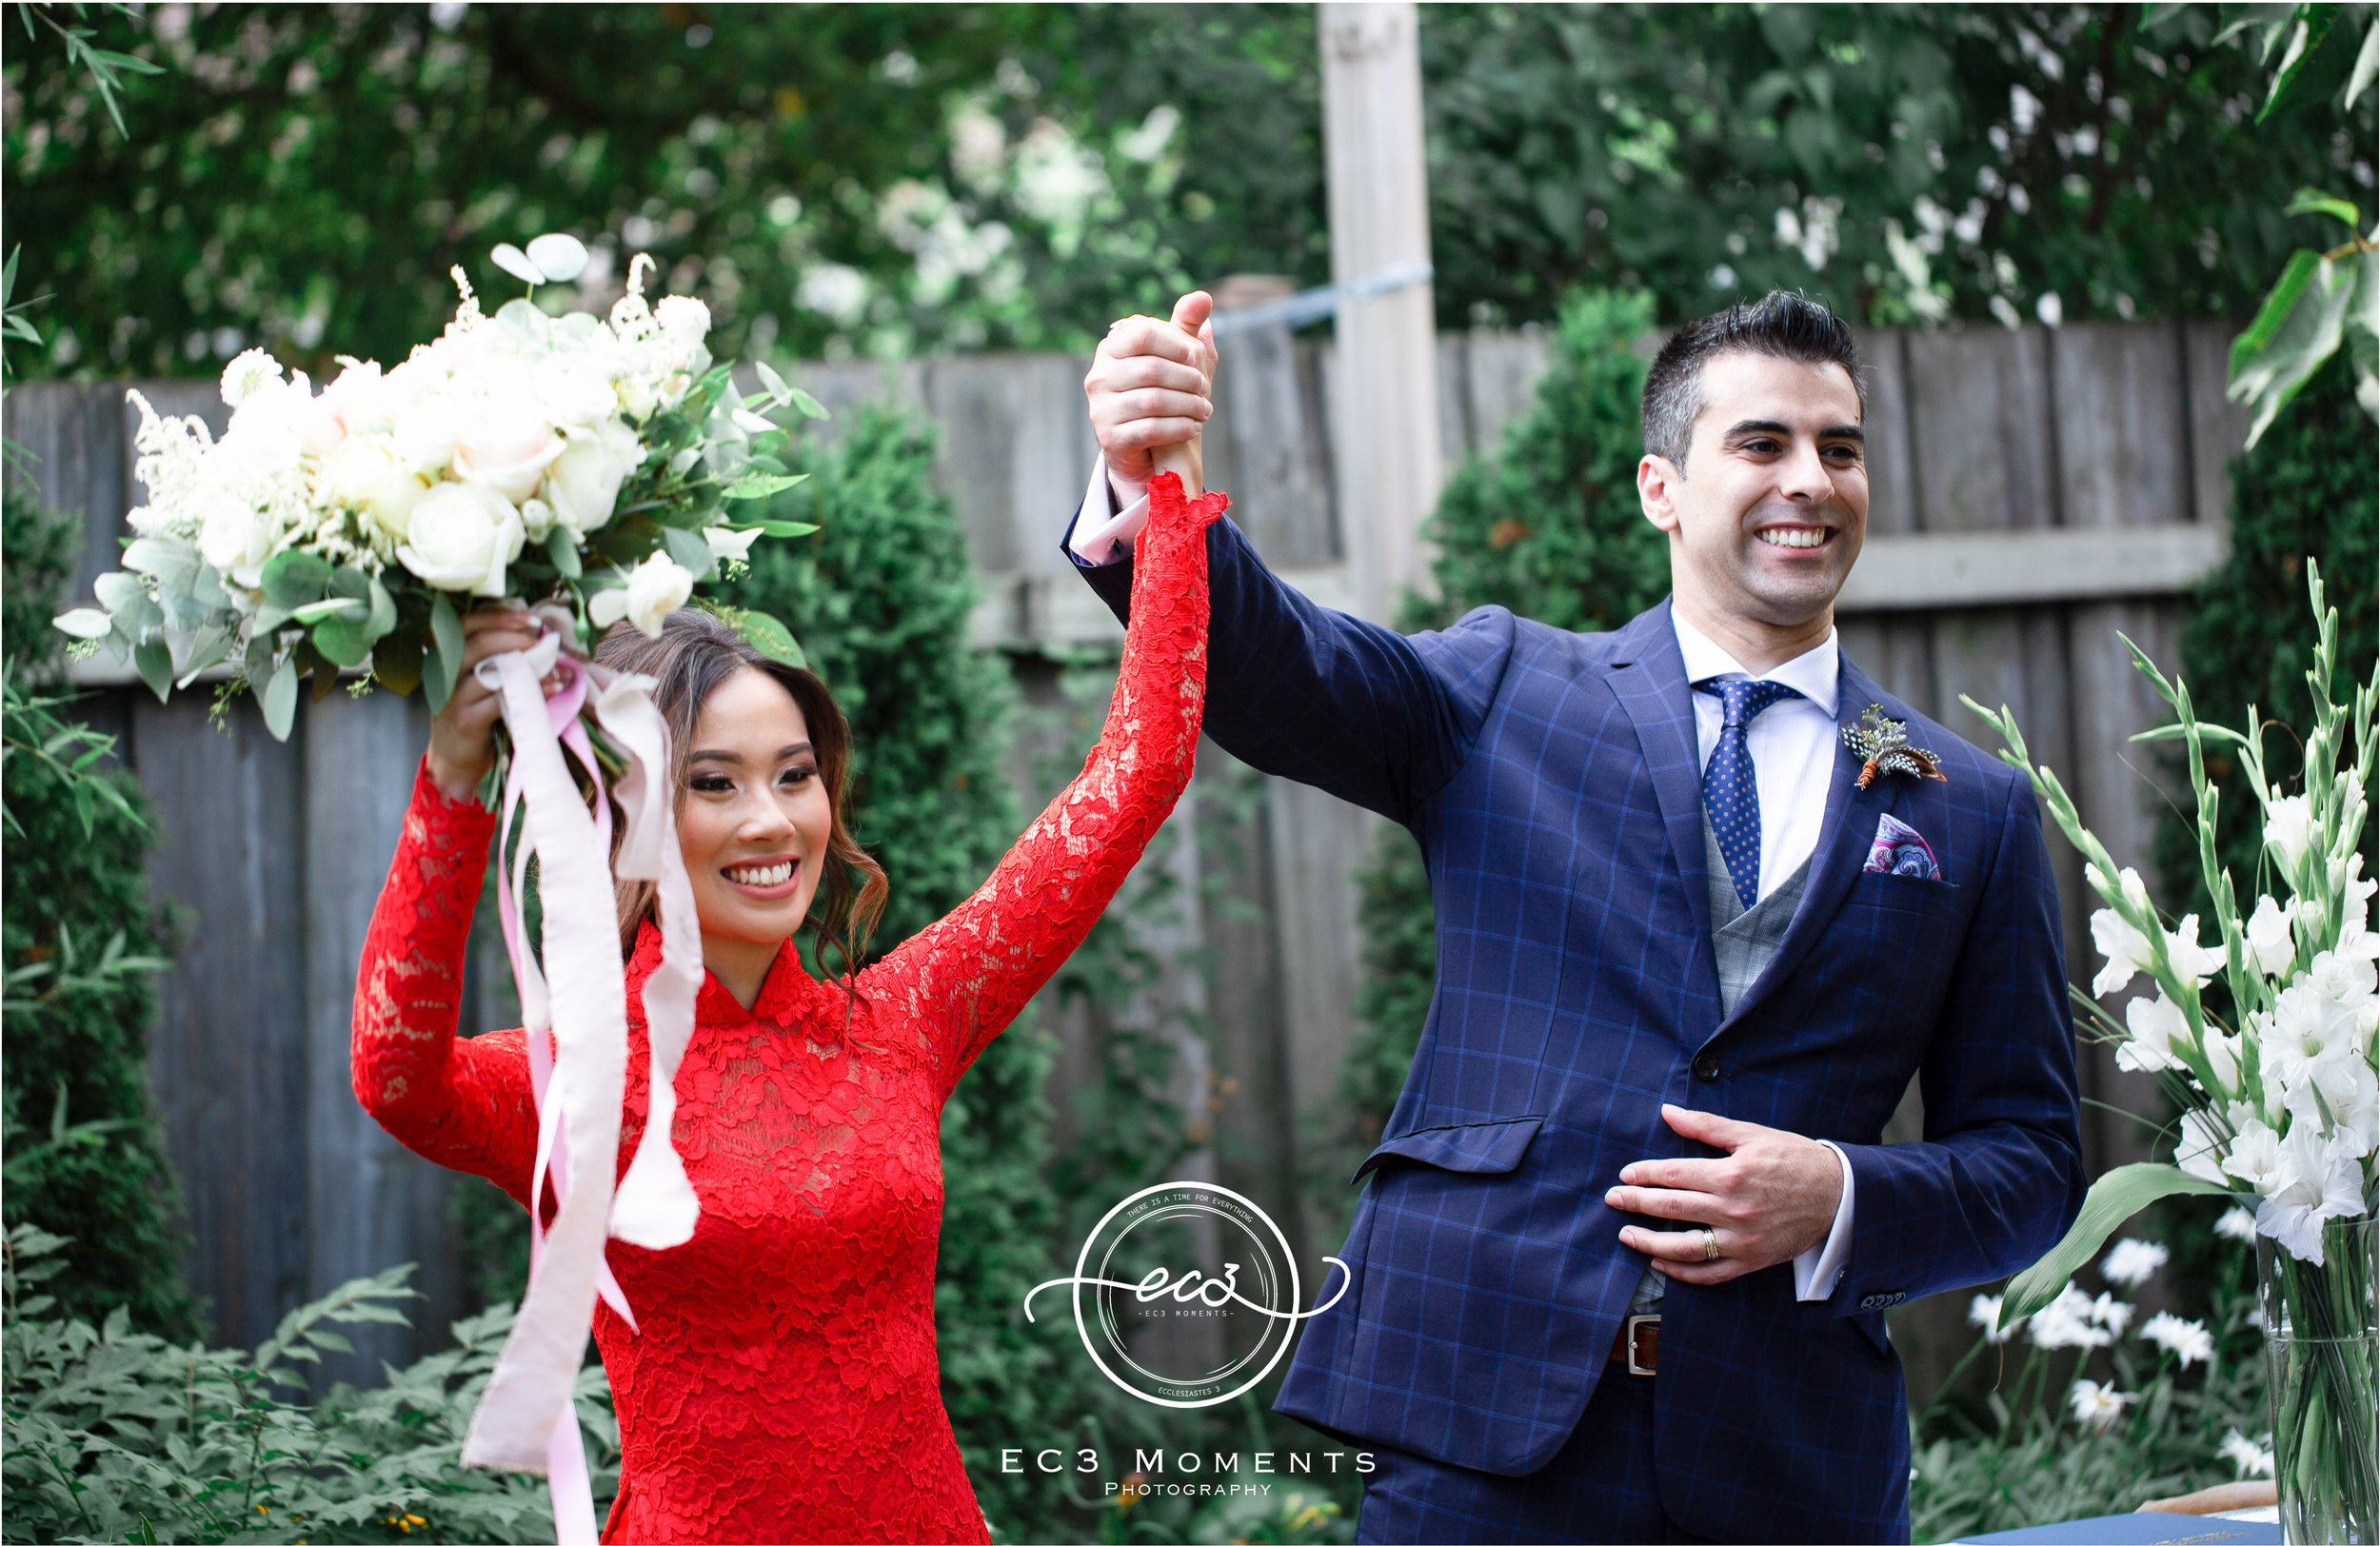 Vivian and Wes Toronto Fantasy Fair Banquet Wedding 26.jpg